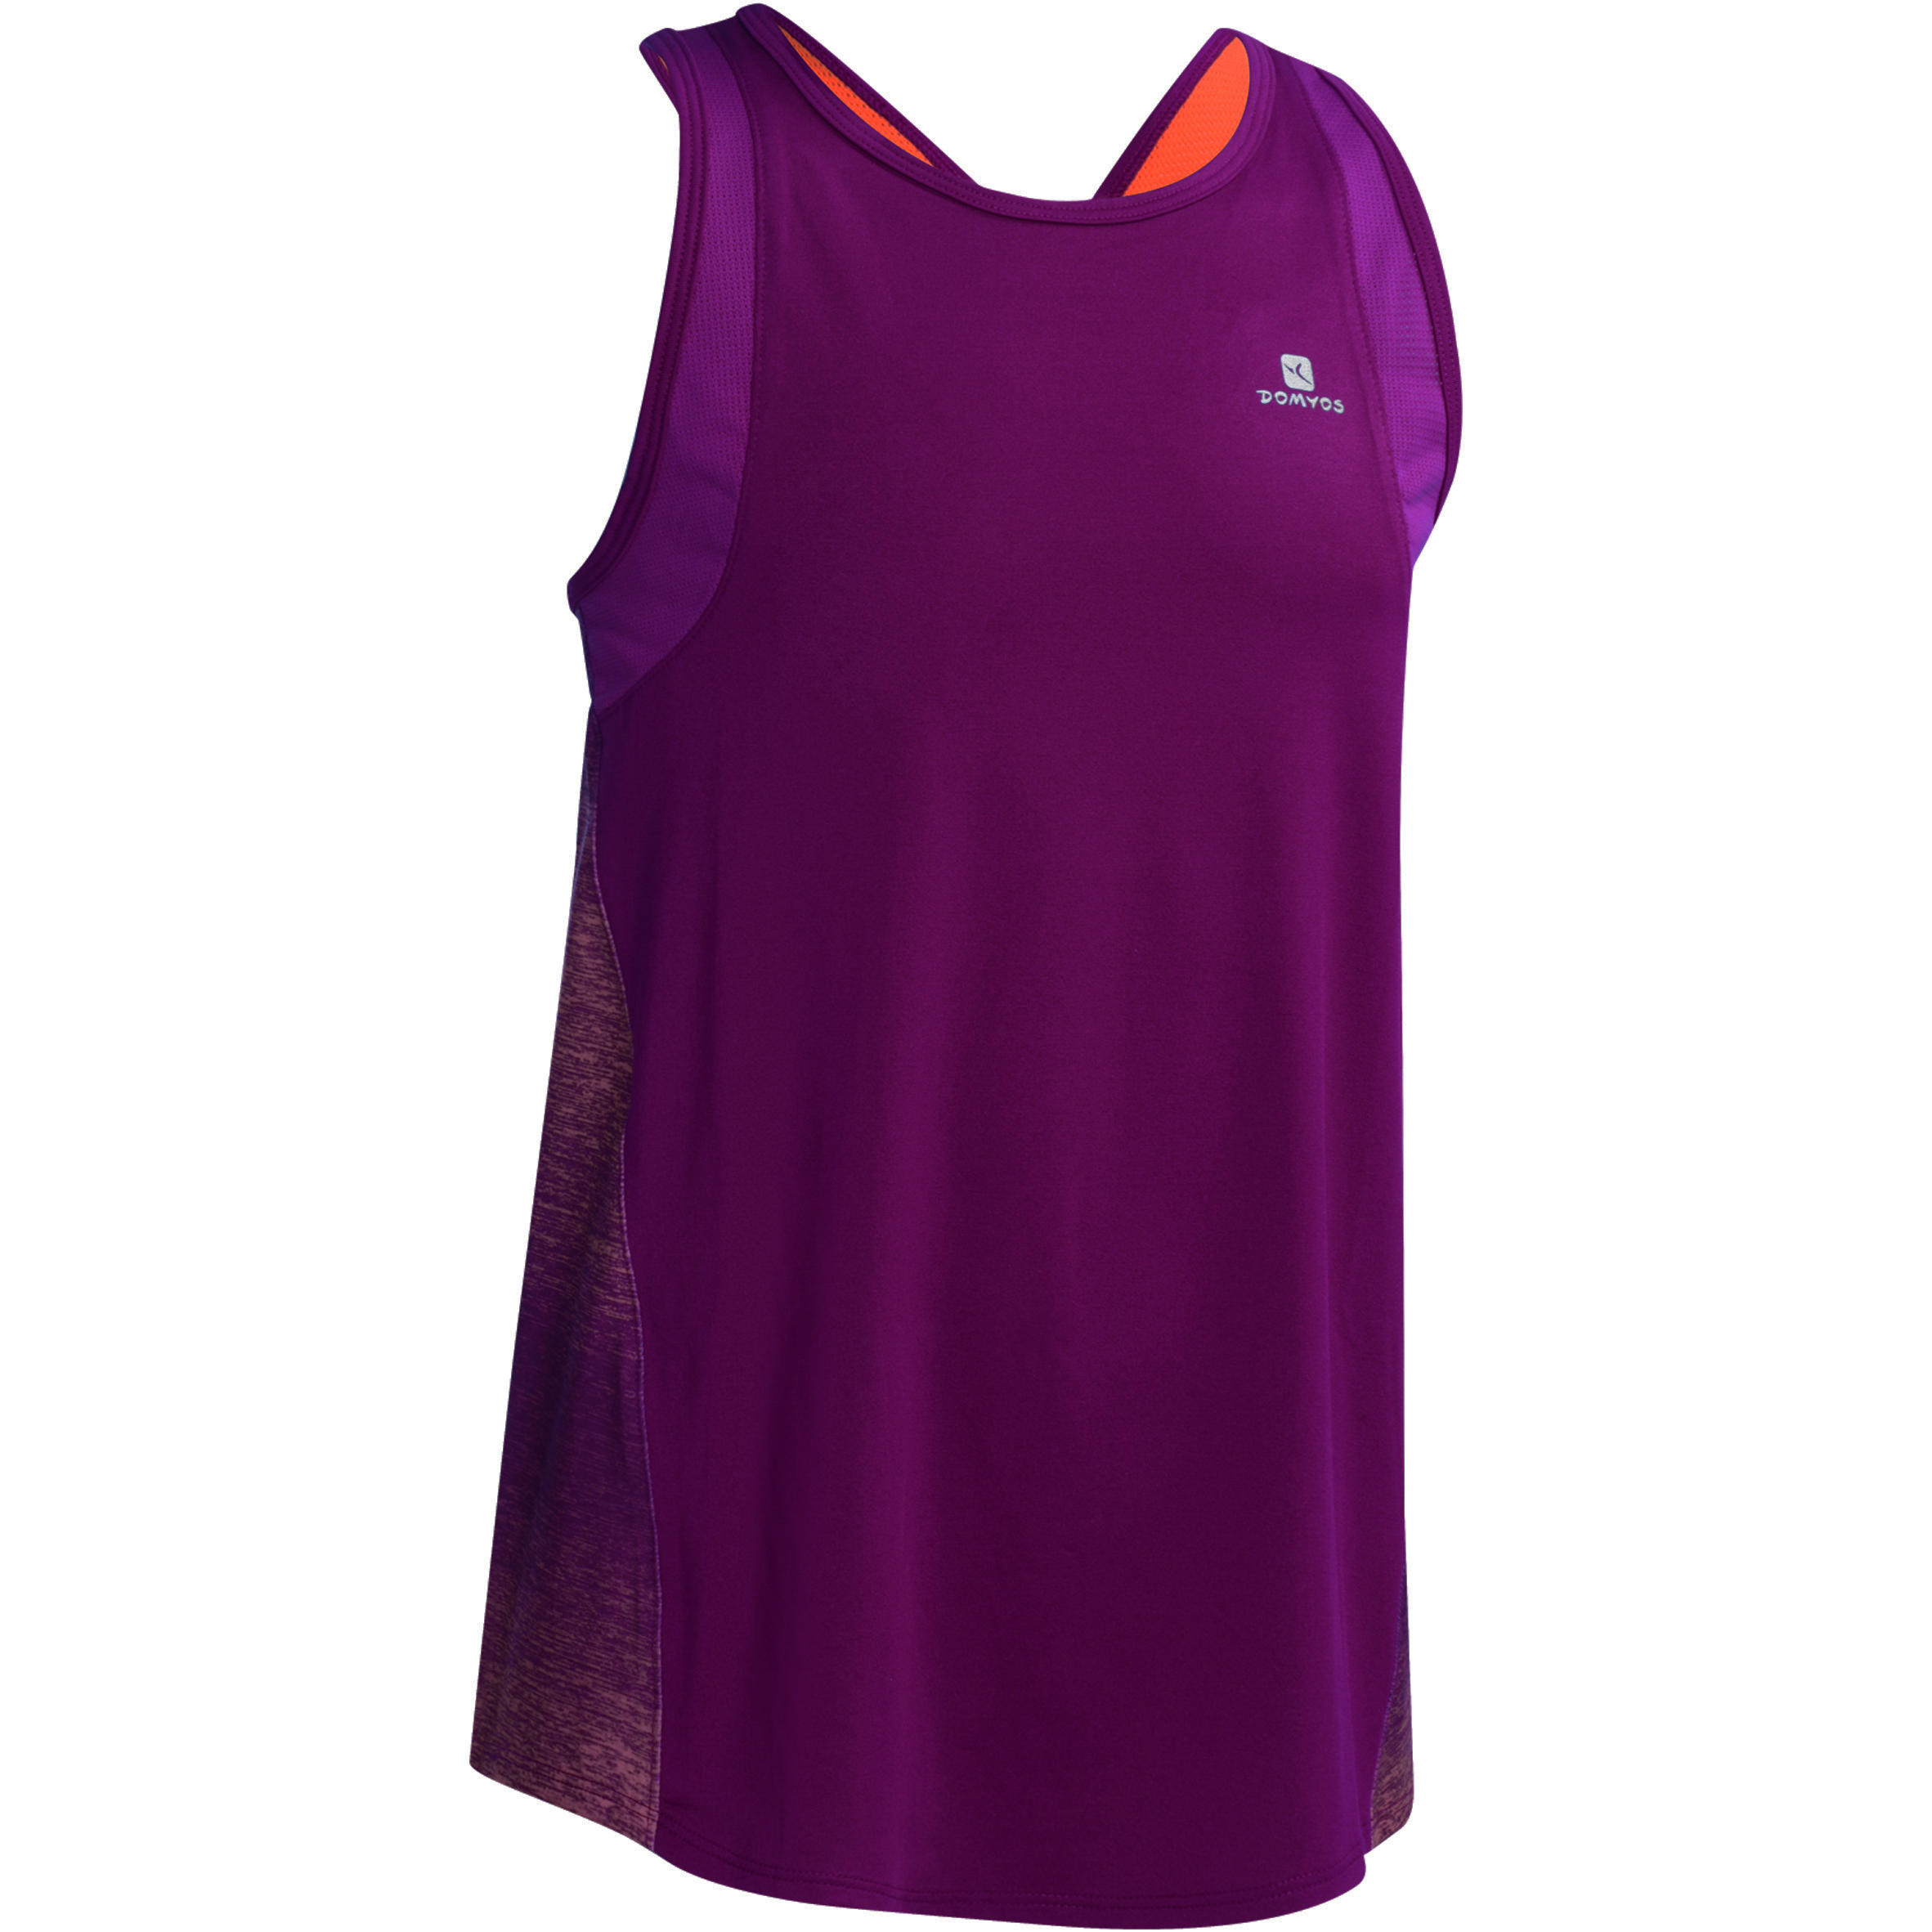 Débardeur Gym Energy fille violet orange